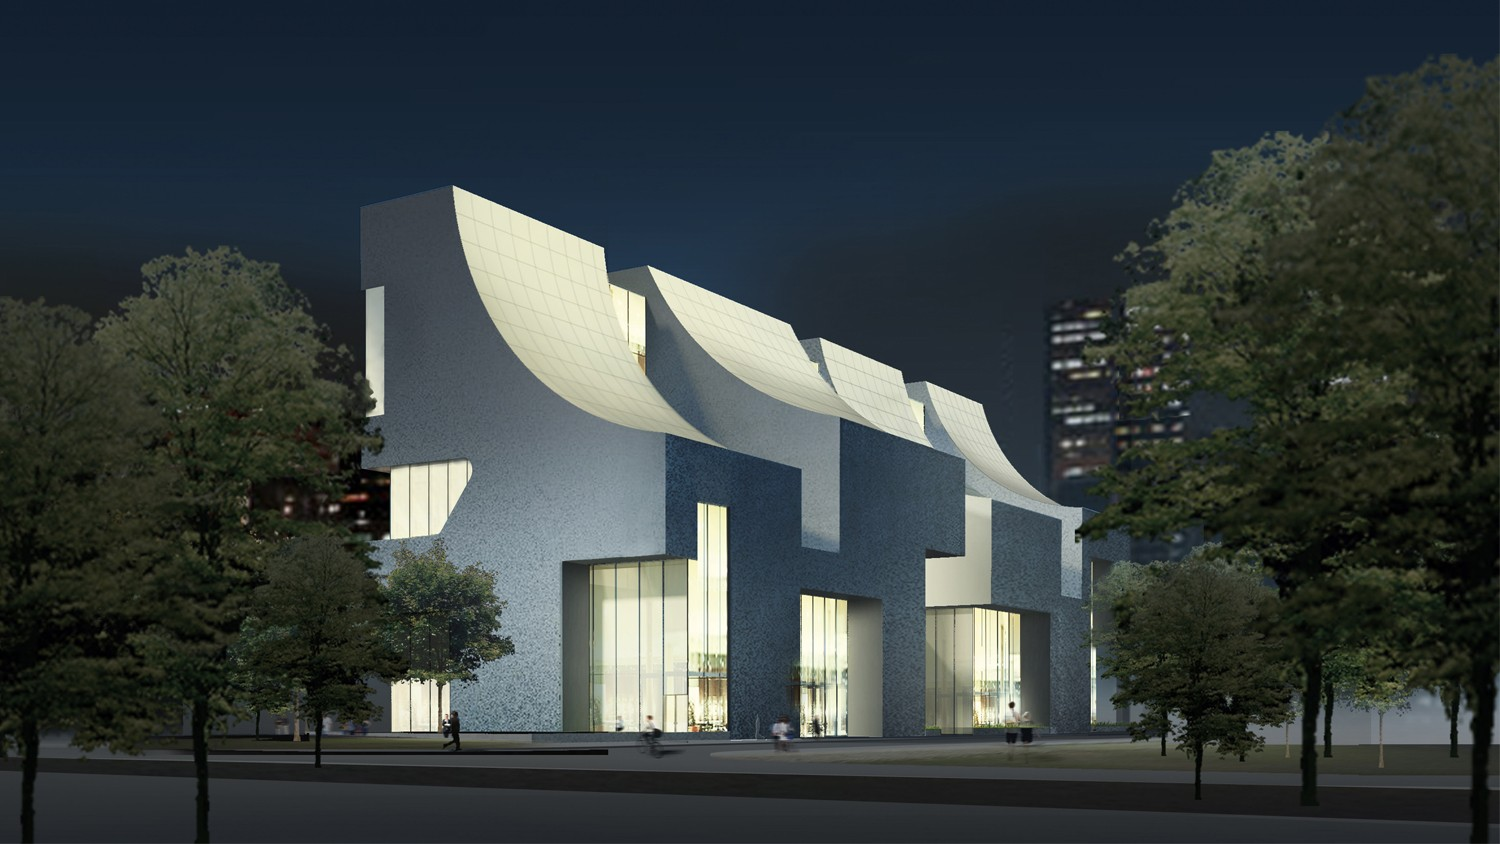 https://stevenholl.sfo2.digitaloceanspaces.com/uploads/projects/project-images/cifi-exterior-north-night.jpg